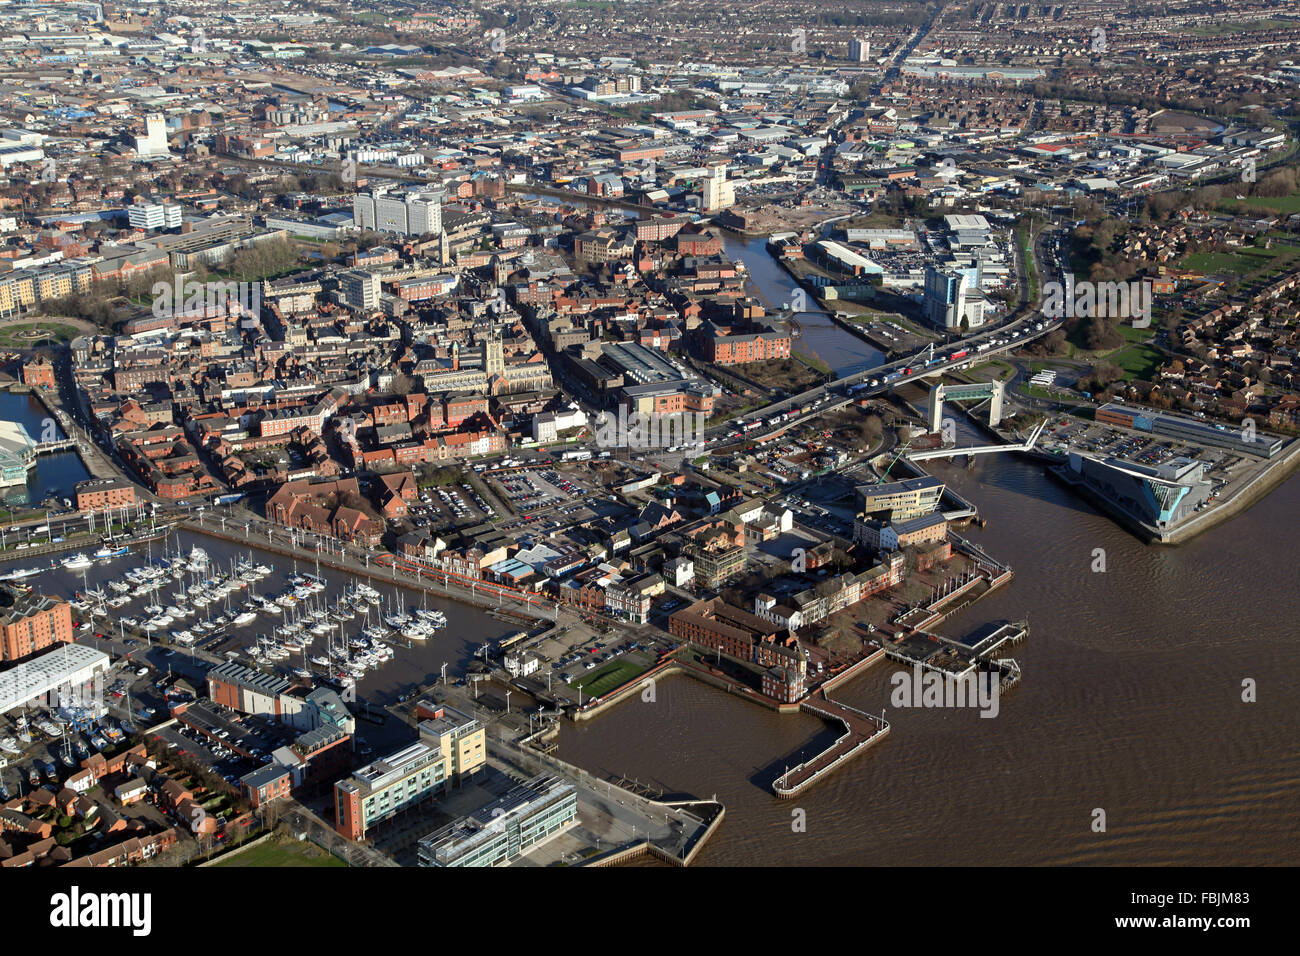 aerial view of Hull city centre, Marina, Tidal Barrier, The Deep & River Hull, UK - Stock Image